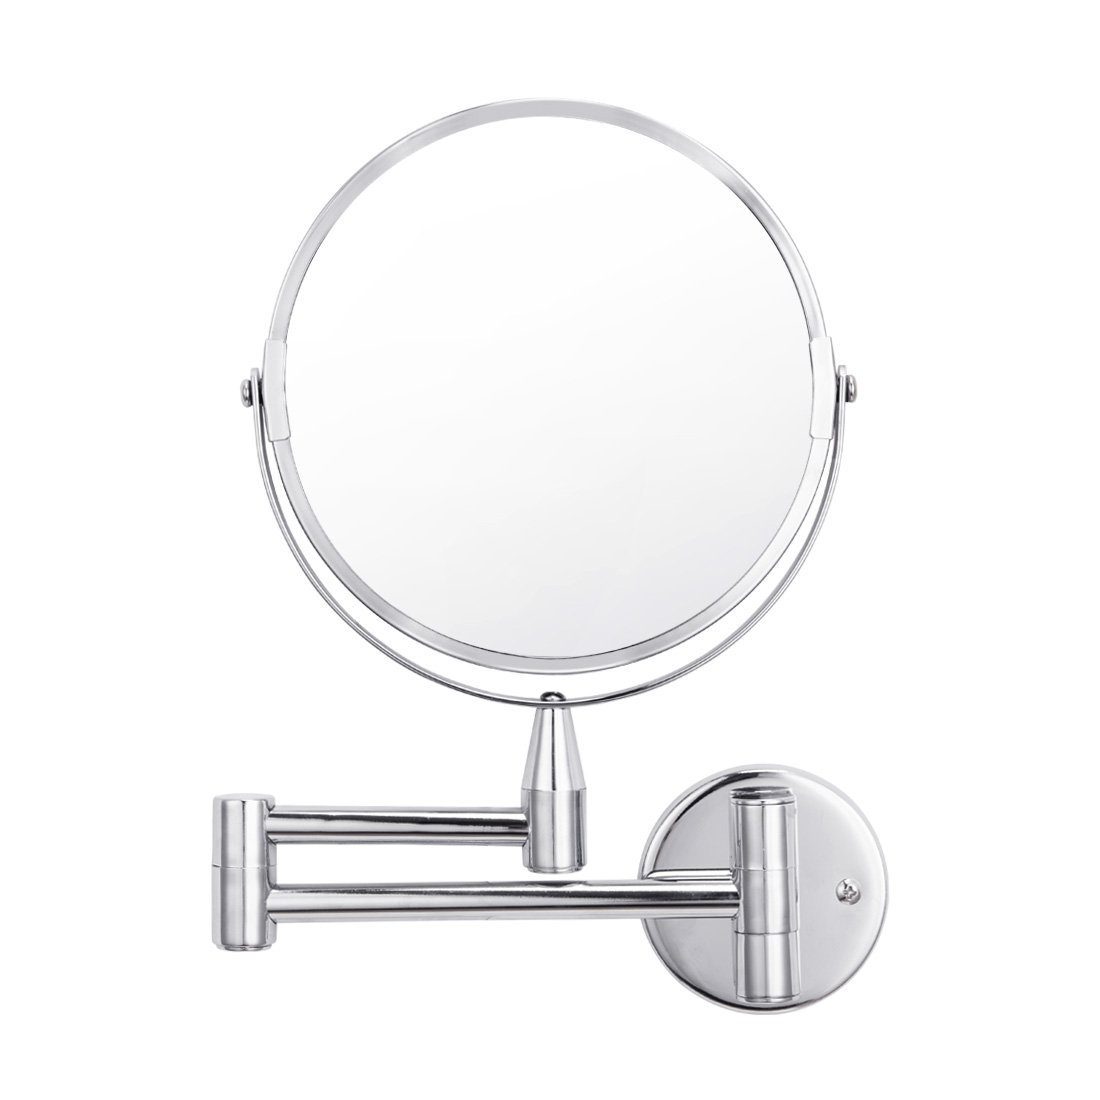 Wall Mounted Makeup Magnifying Mirror 1X 5X Magnification Vanity Extendable Double Sided 360 Degrees Swivel Chrome Finished Mirrors for Bedroom Bathroom Hotel